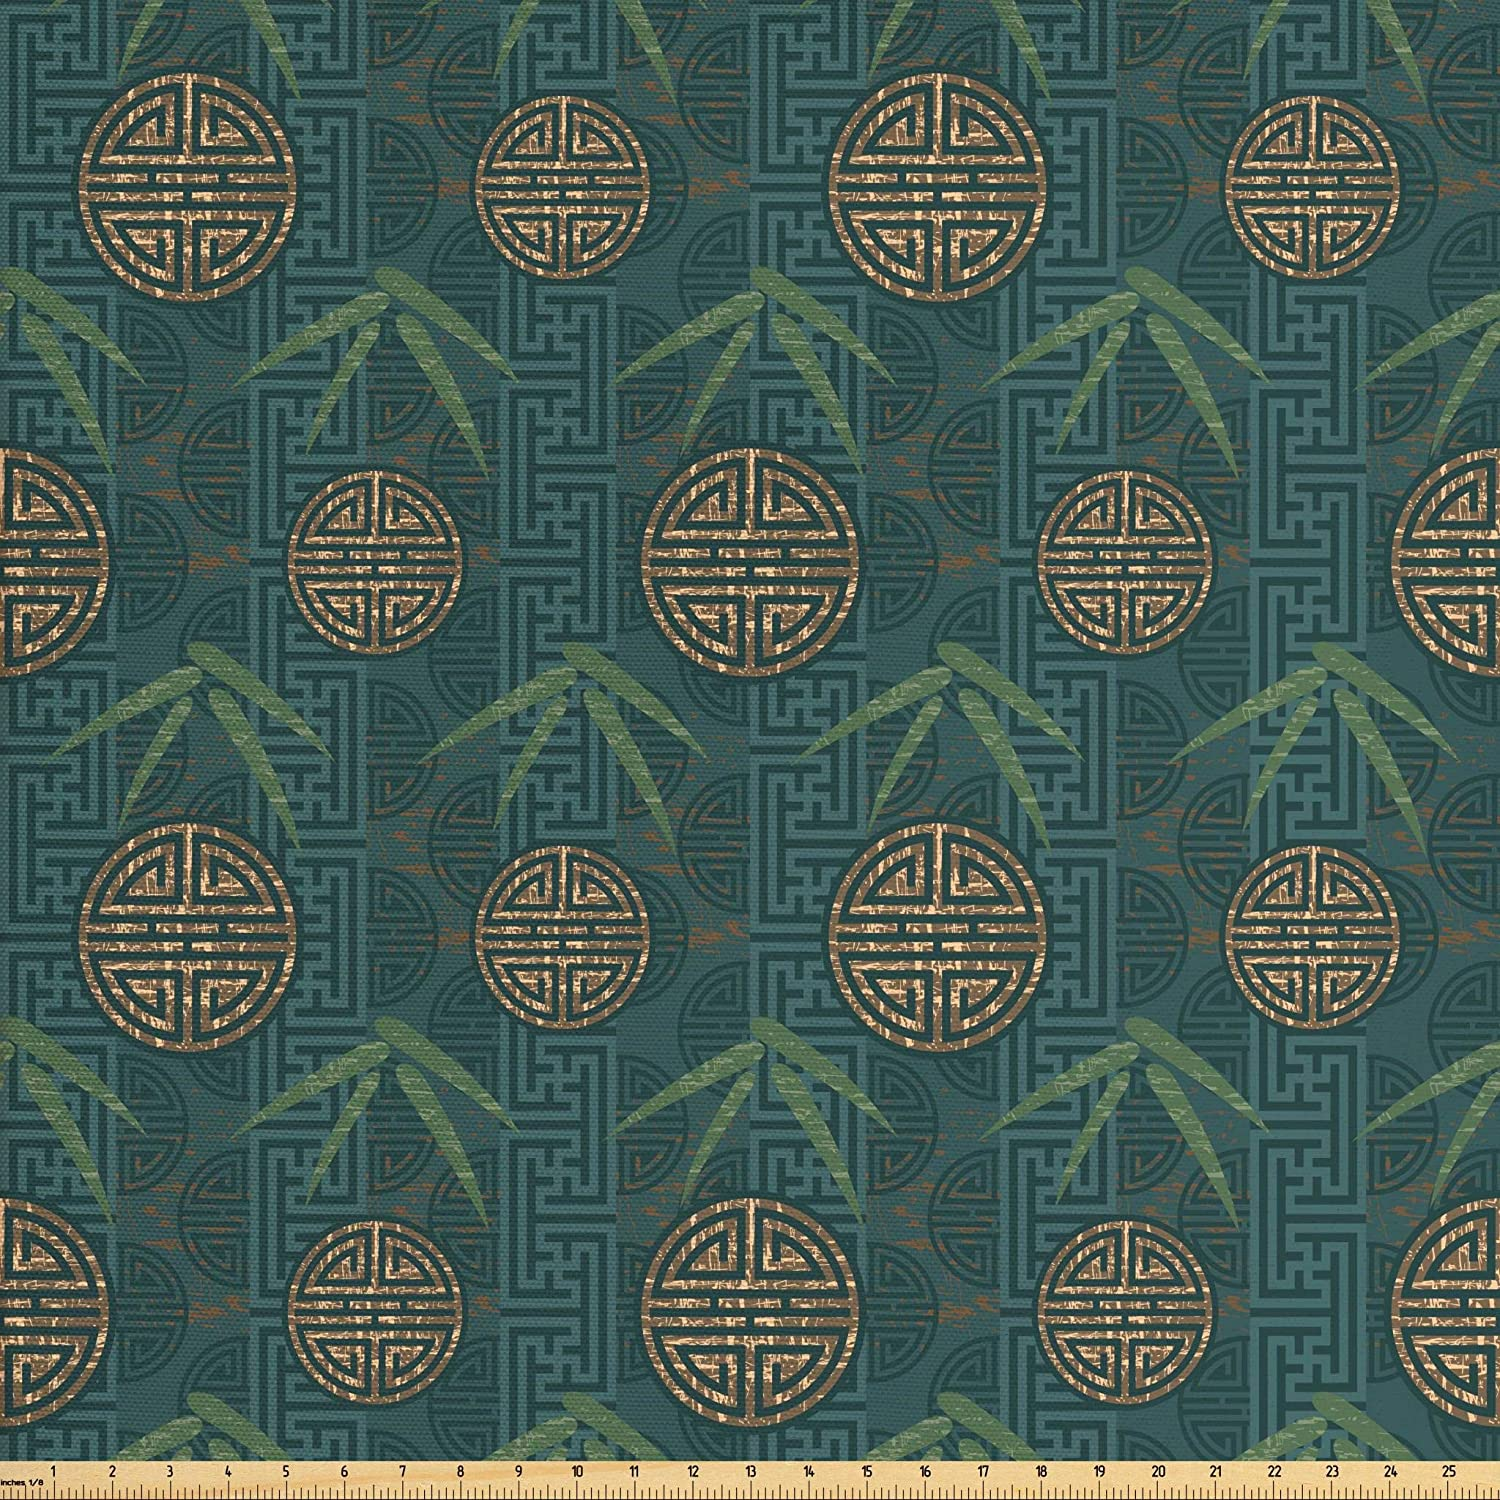 Ambesonne Bamboo Fabric by The Yard, Style Composition with Oriental Motifs Leaves Eastern Elements, Decorative Fabric for Upholstery and Home Accents, 1 Yard, Ivory Teal